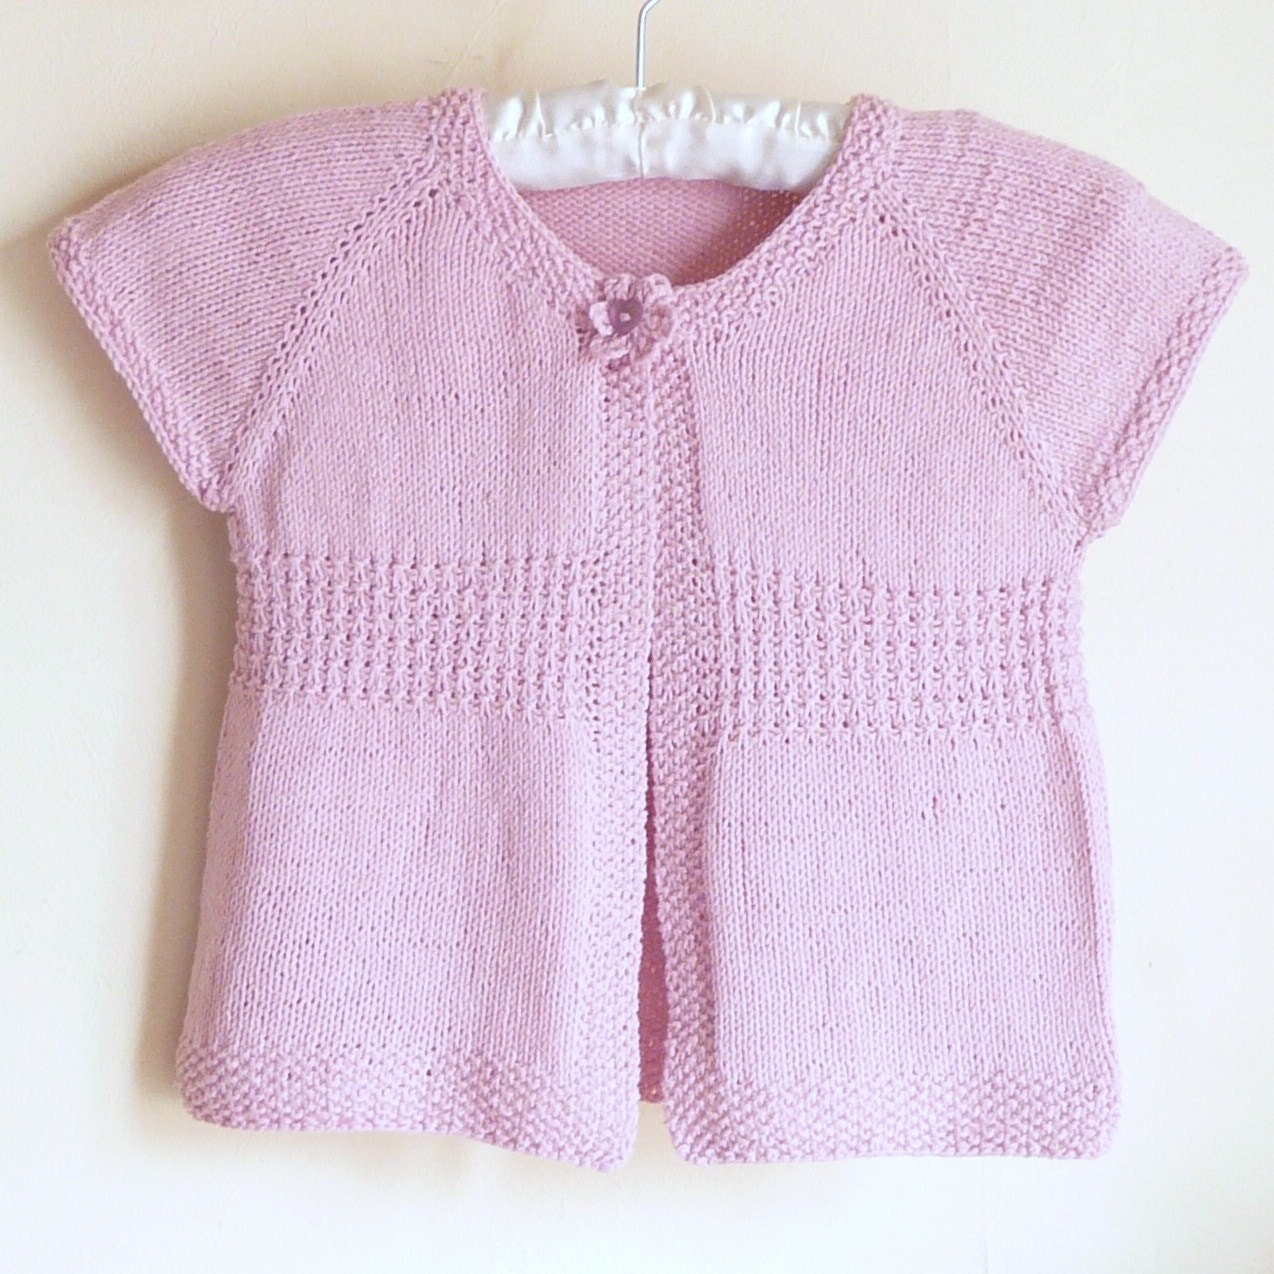 Knitting Pattern Cardigan Girl : Knitting PATTERN Seamless Top Down Baby Girl CARDIGAN by ceradka